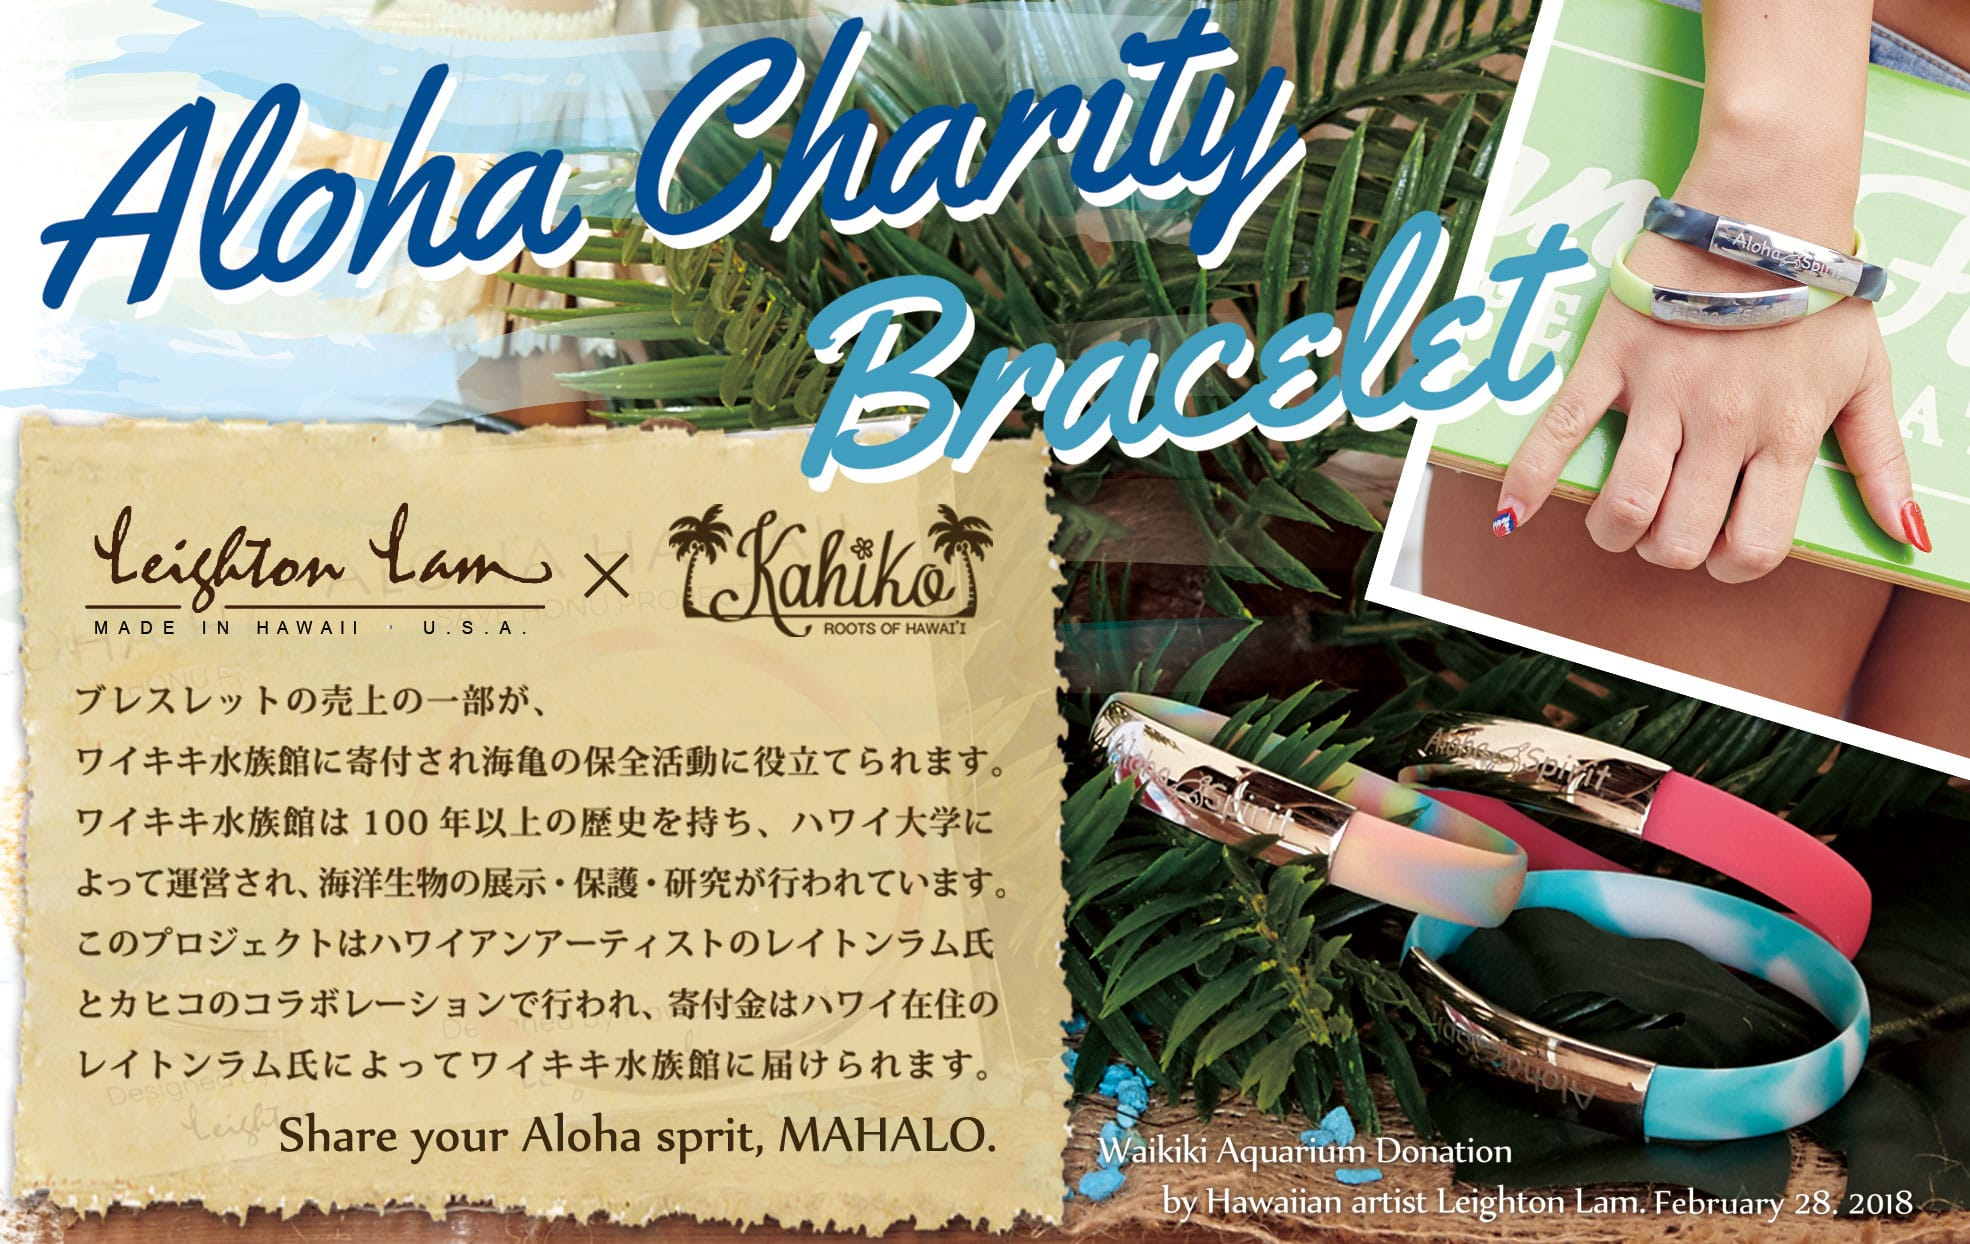 AlohaCharity